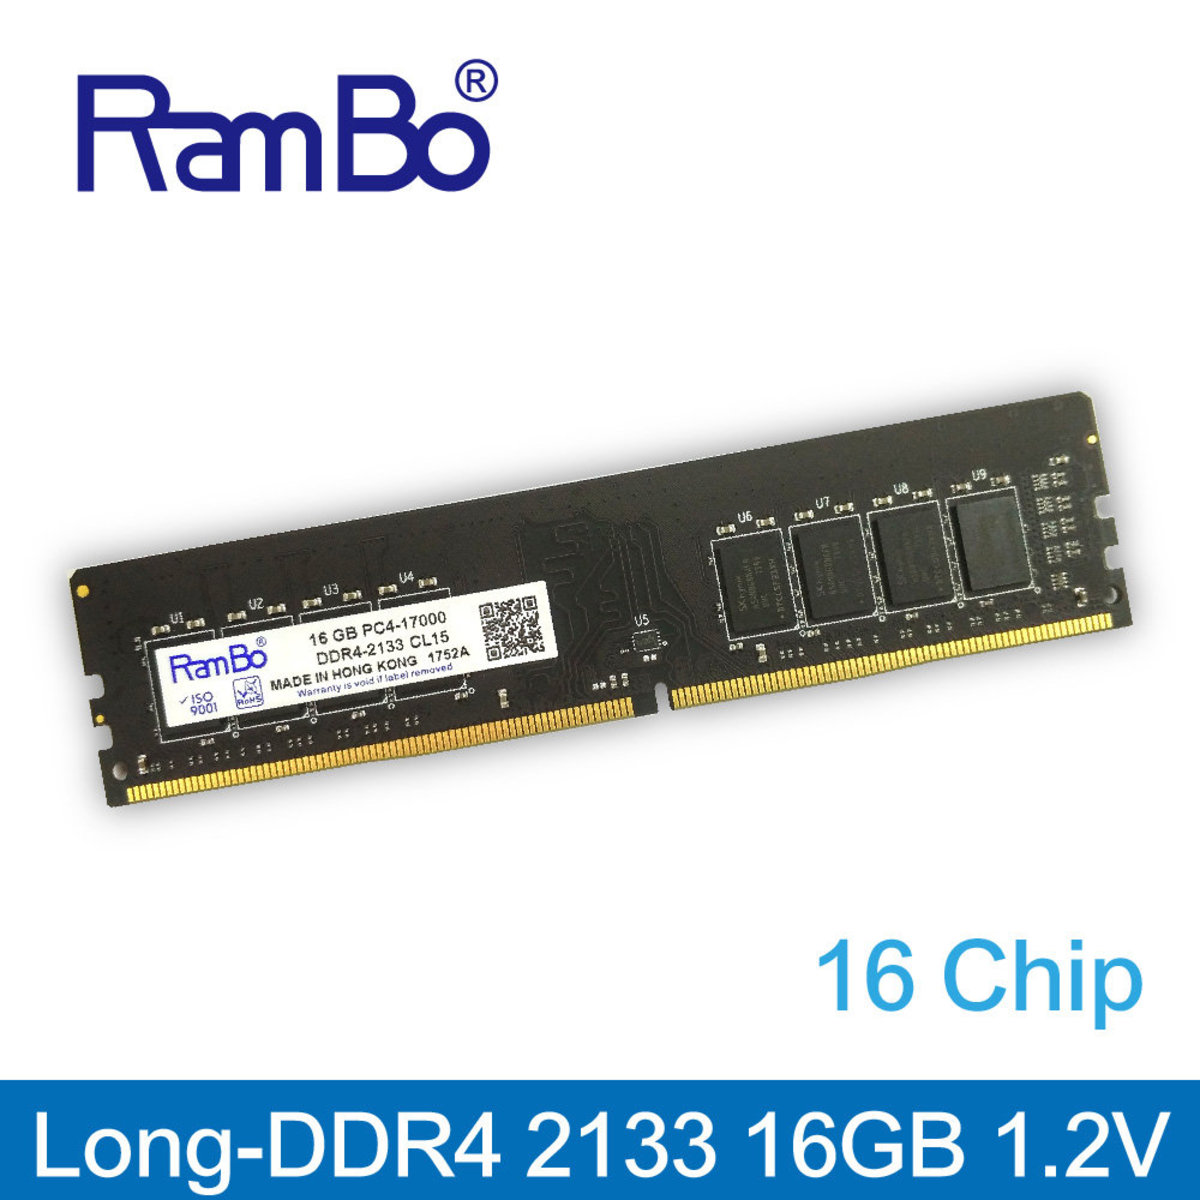 16GB PC4-17000 DDR4 2133MHz Long DIMM SDRAM for PC